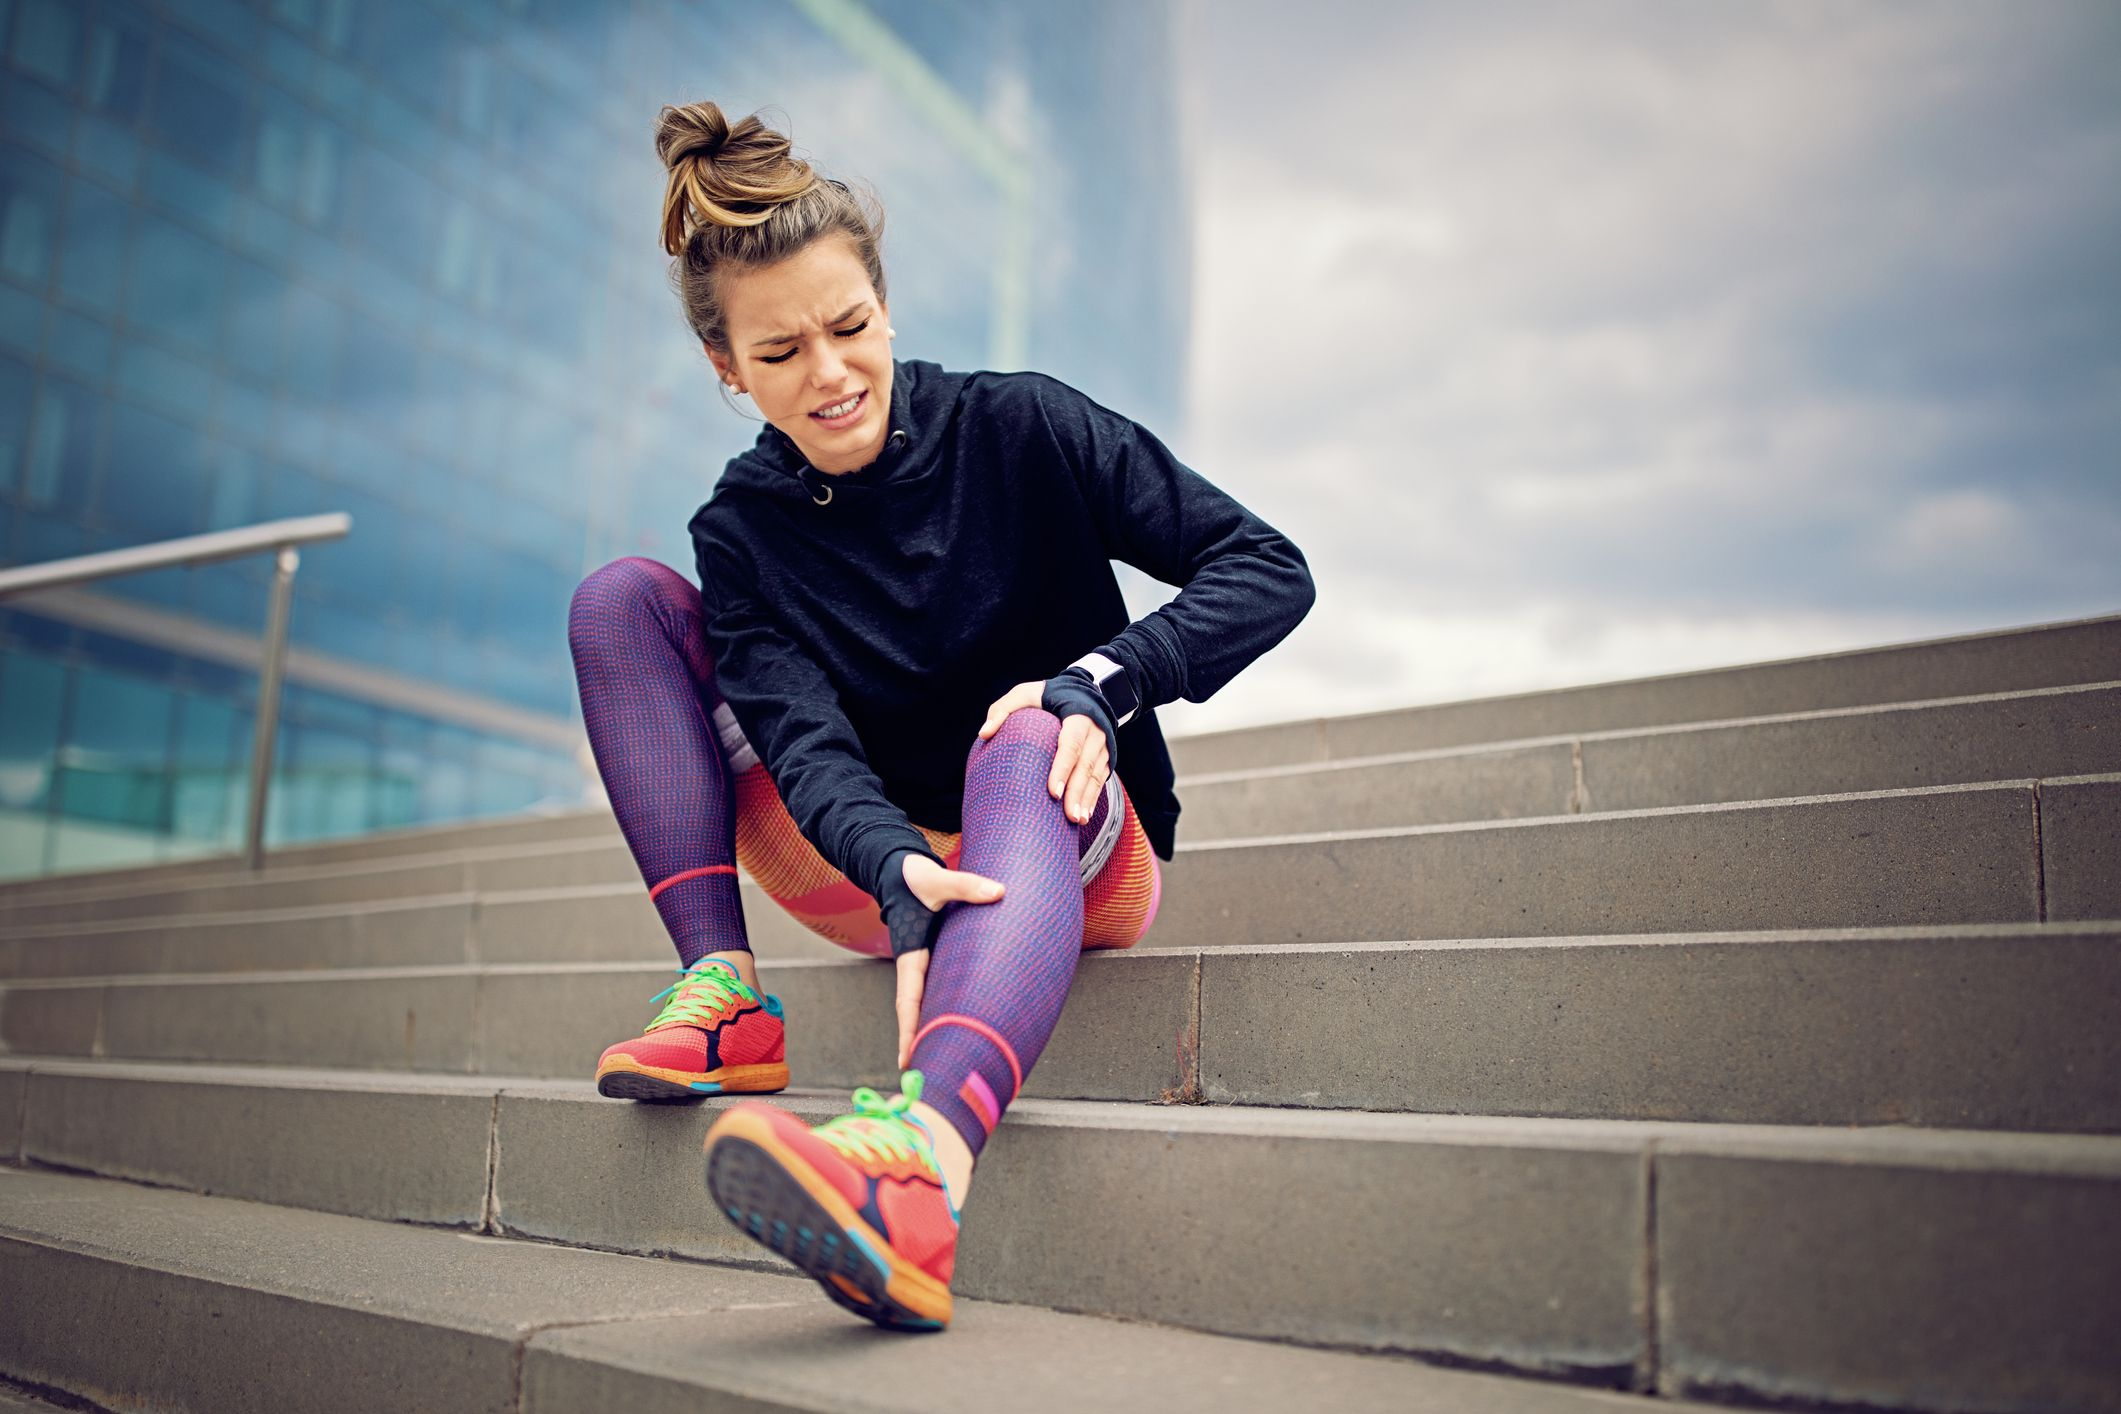 injured-runner-girl-is-sitting-on-the-city-stairs-royalty-free-image-899449982-1547549562